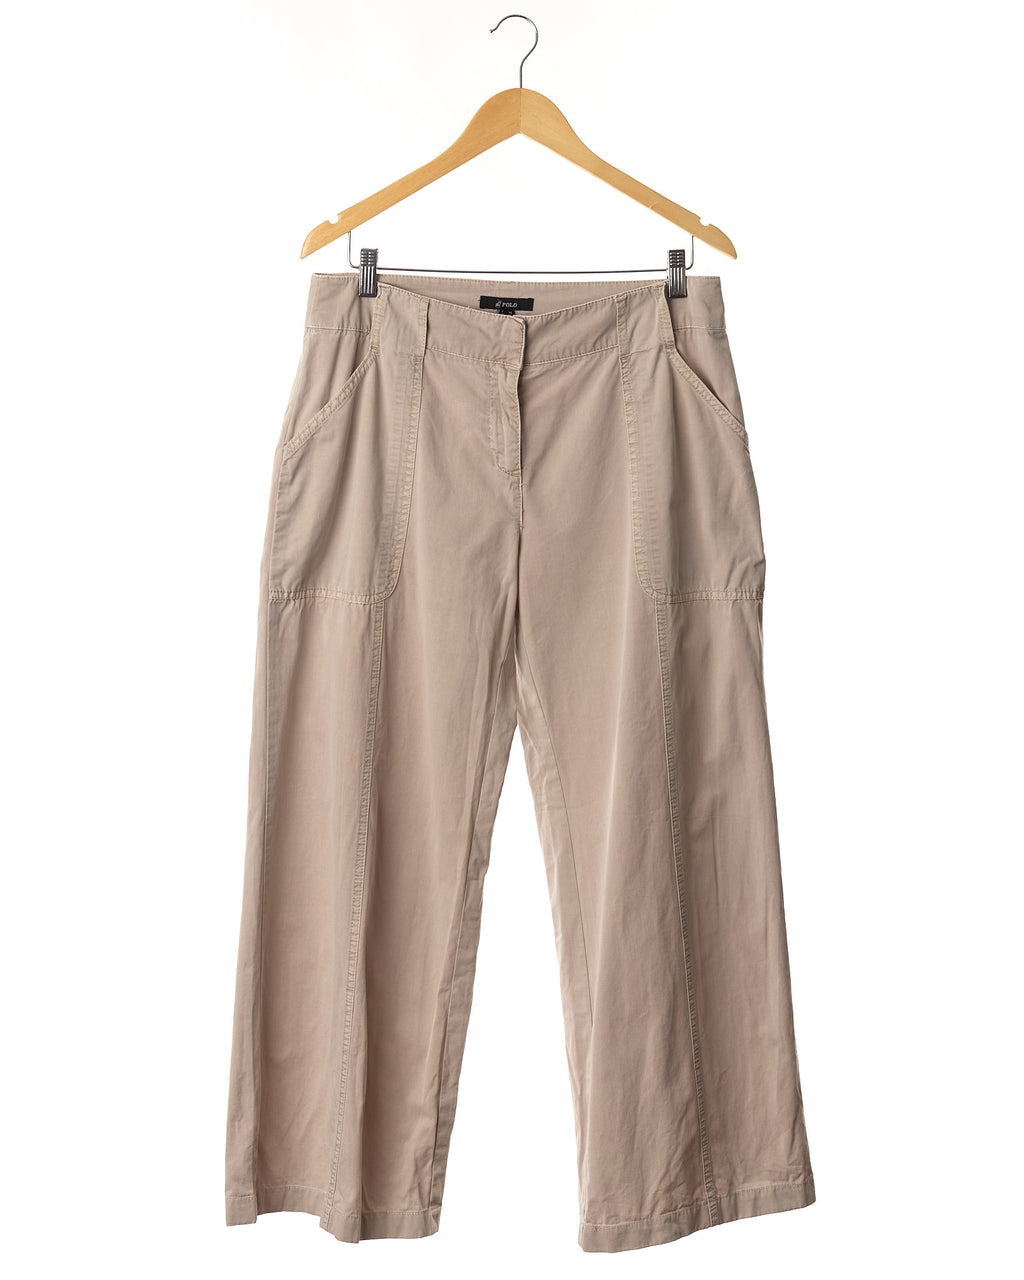 Oatmeal Cotton Trousers